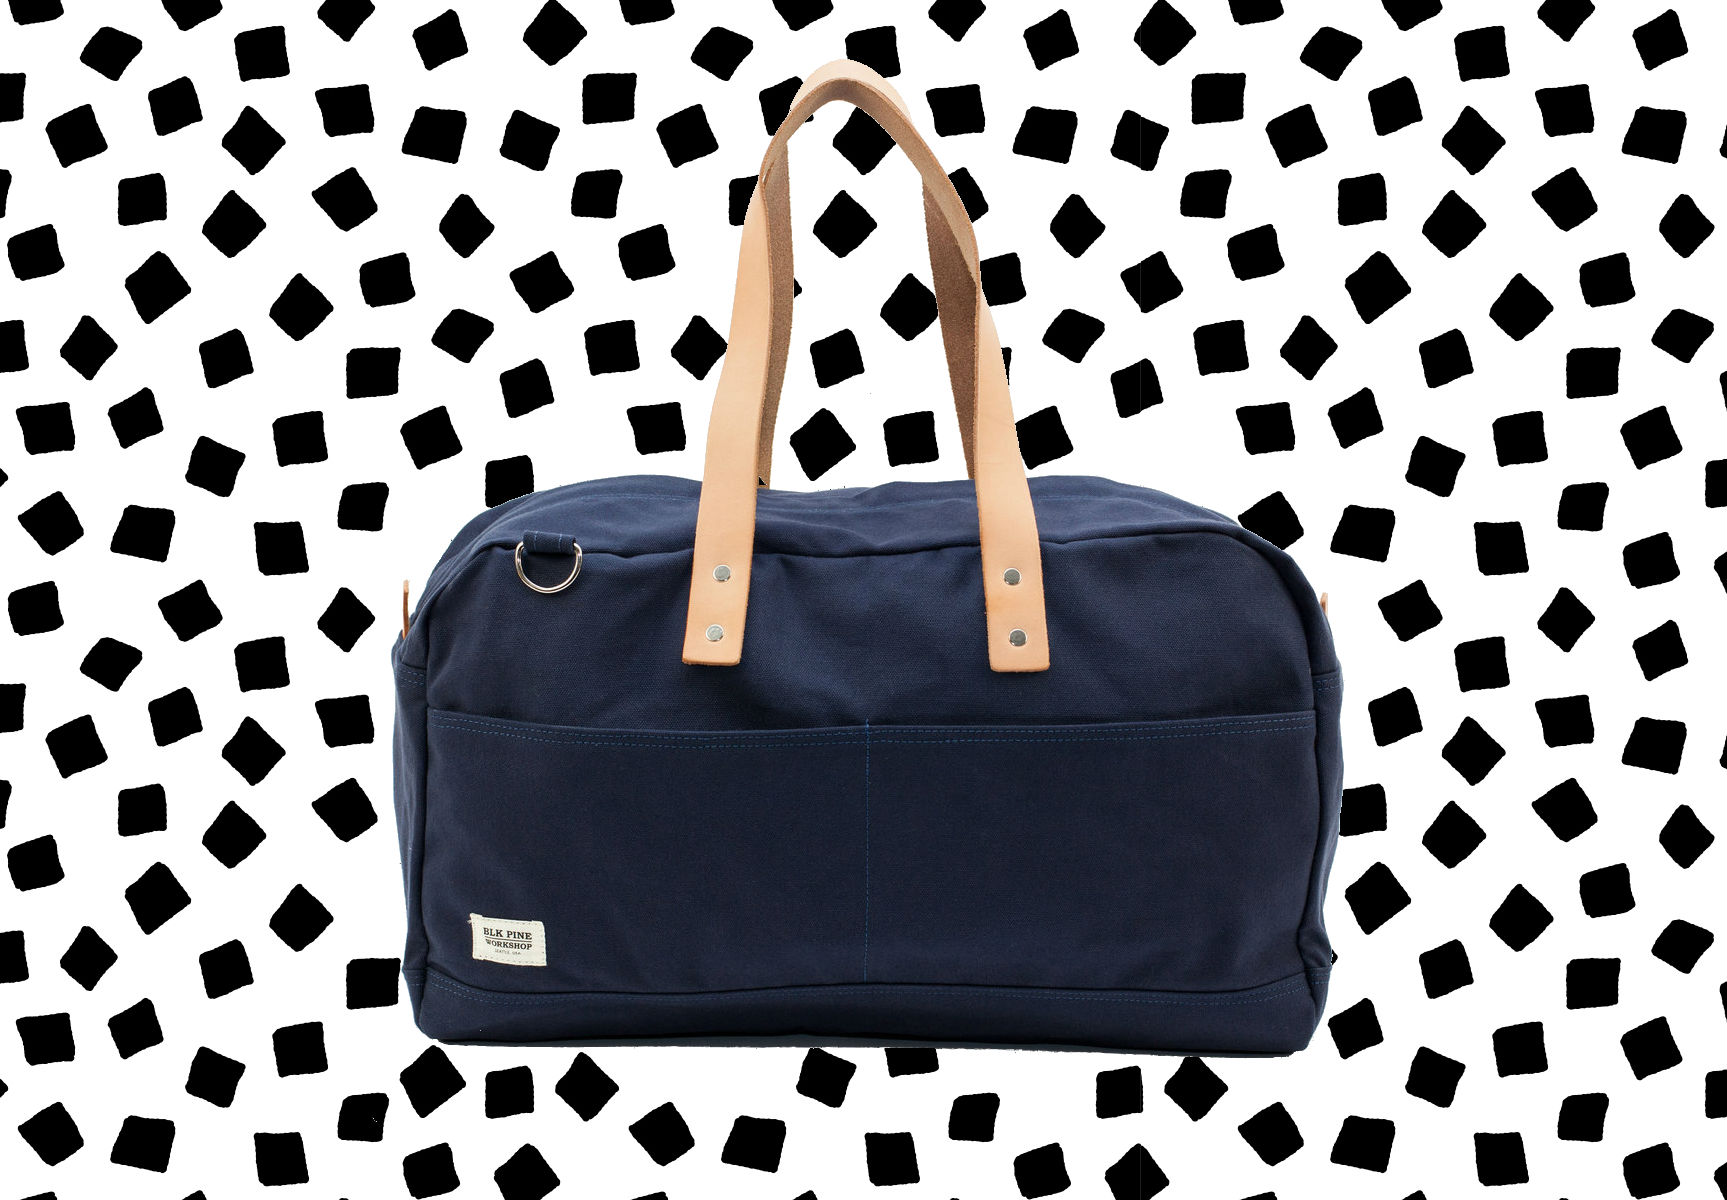 A navy canvas and leather bag